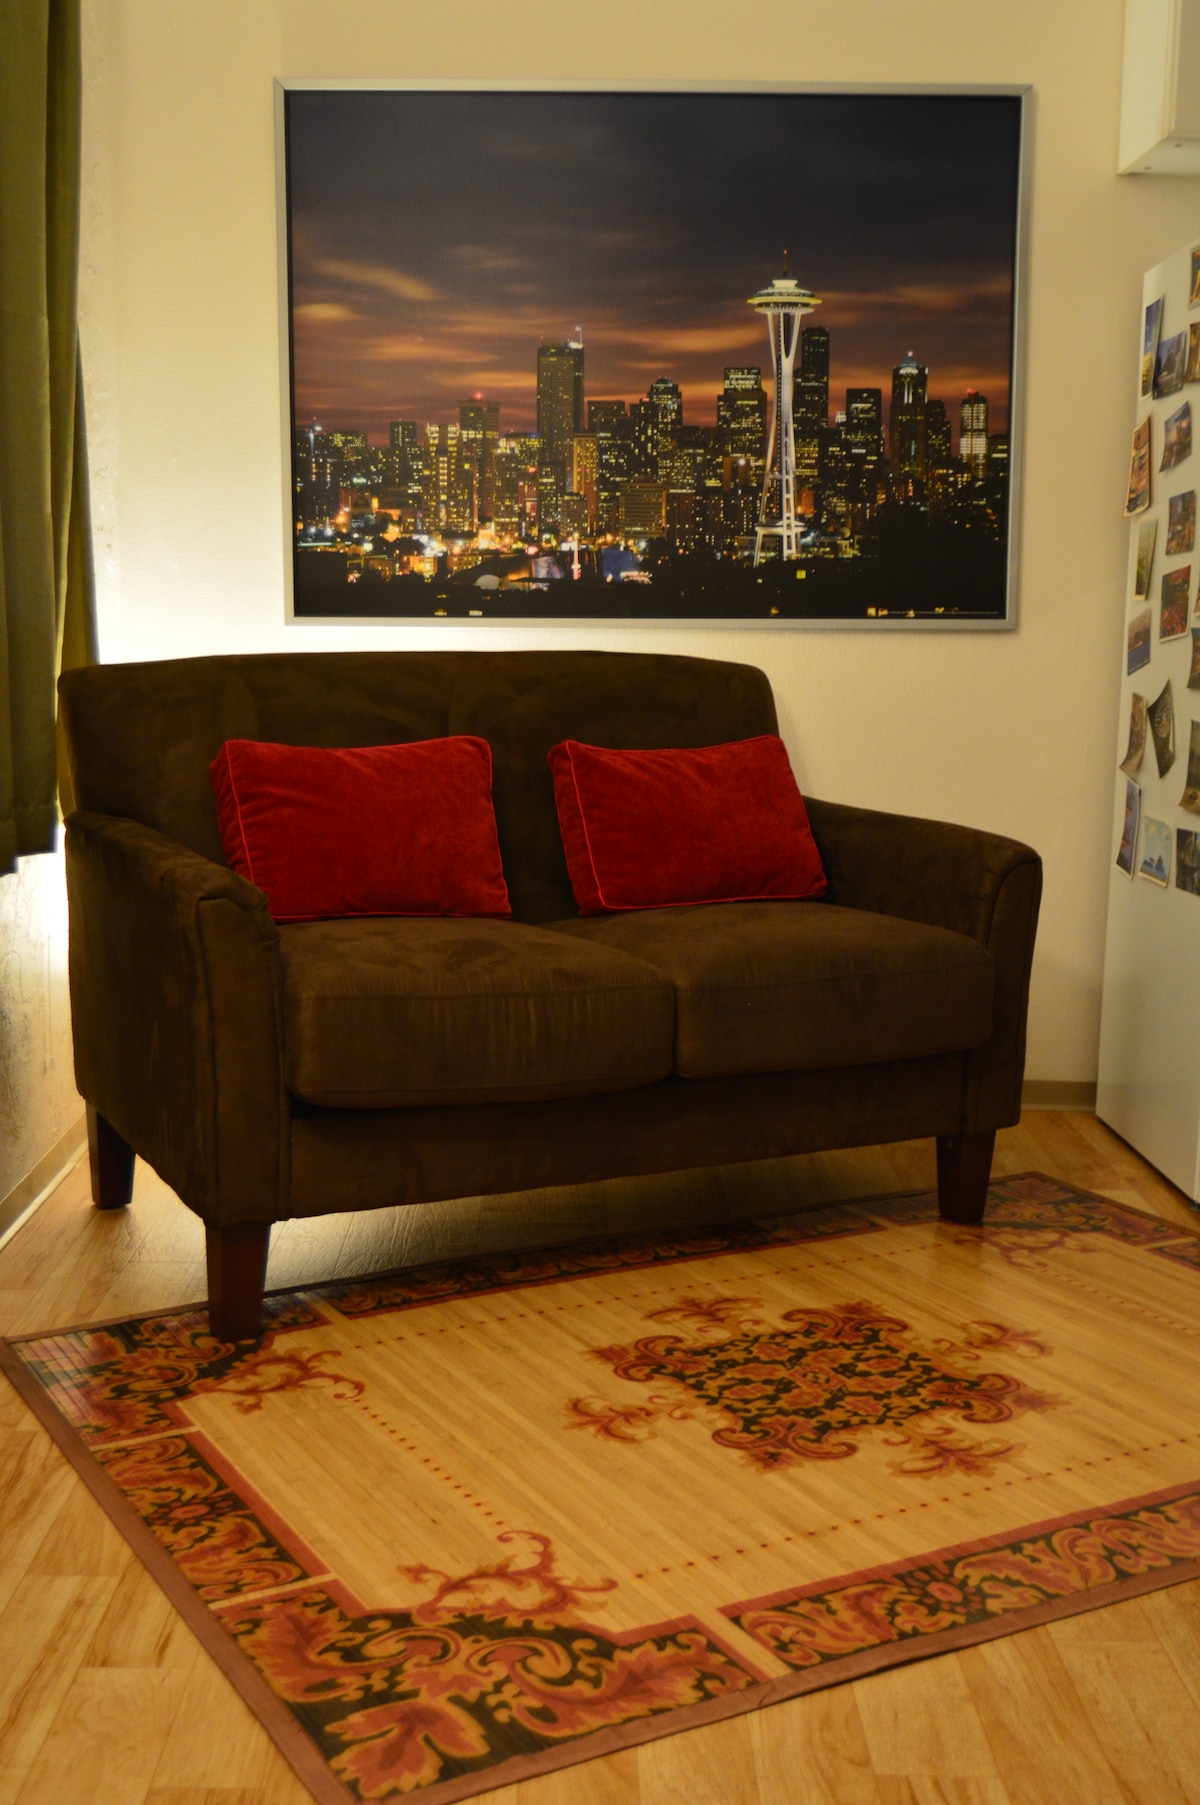 New couch, living room